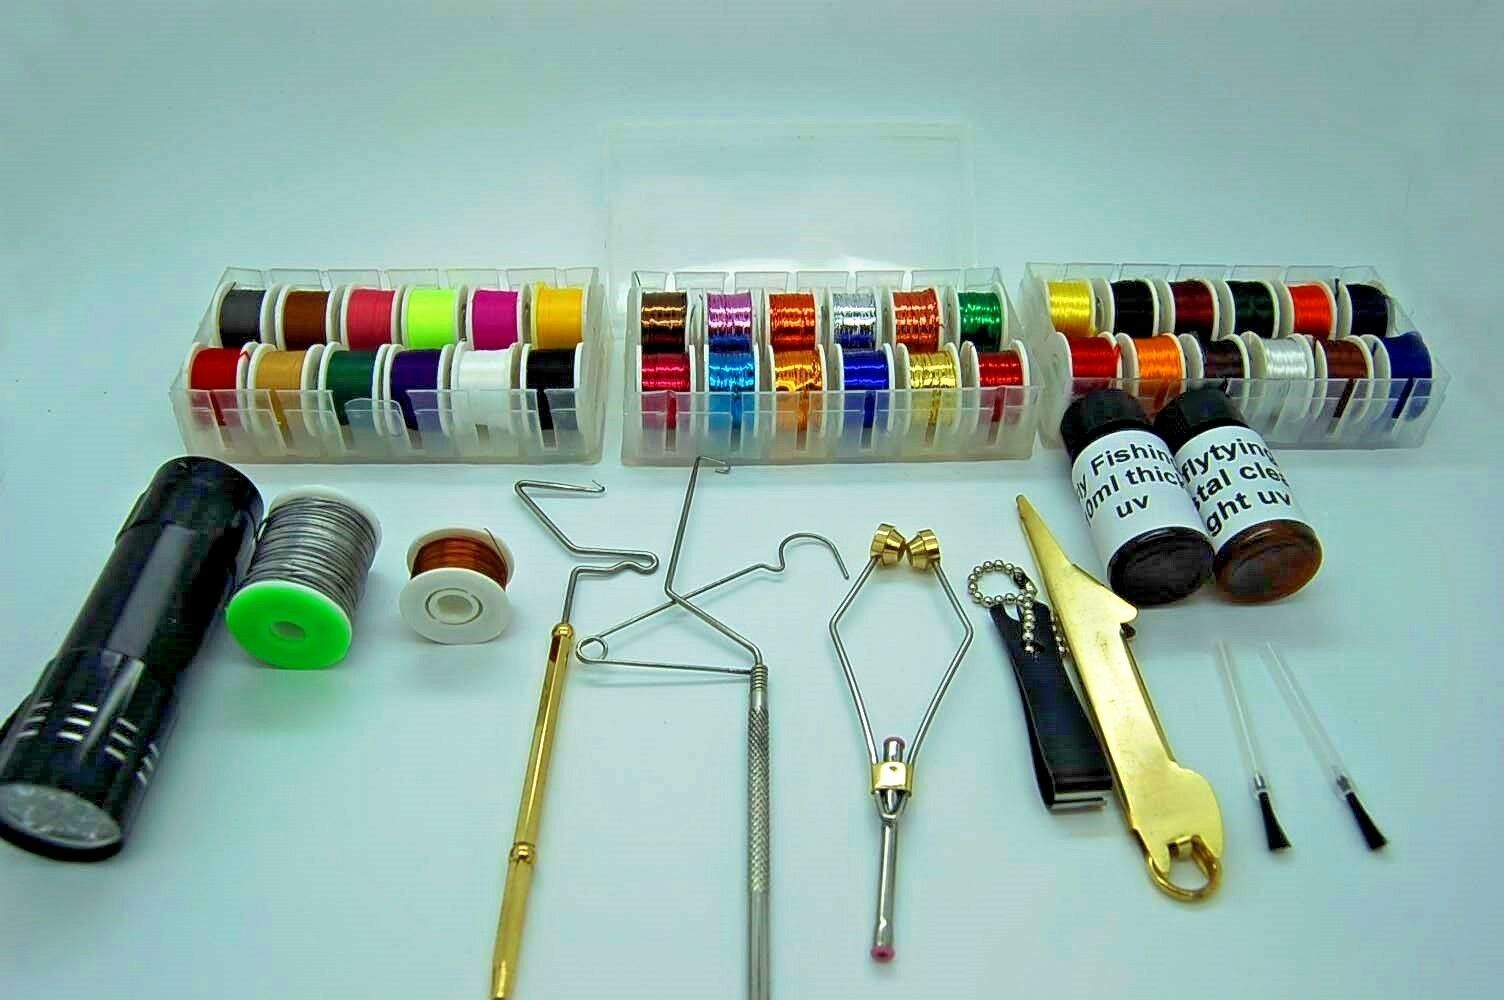 Fly Tying Tool & kit di materiale, filo interdentale, Decorazioni, filo, colla, Whip rifinitore, filo